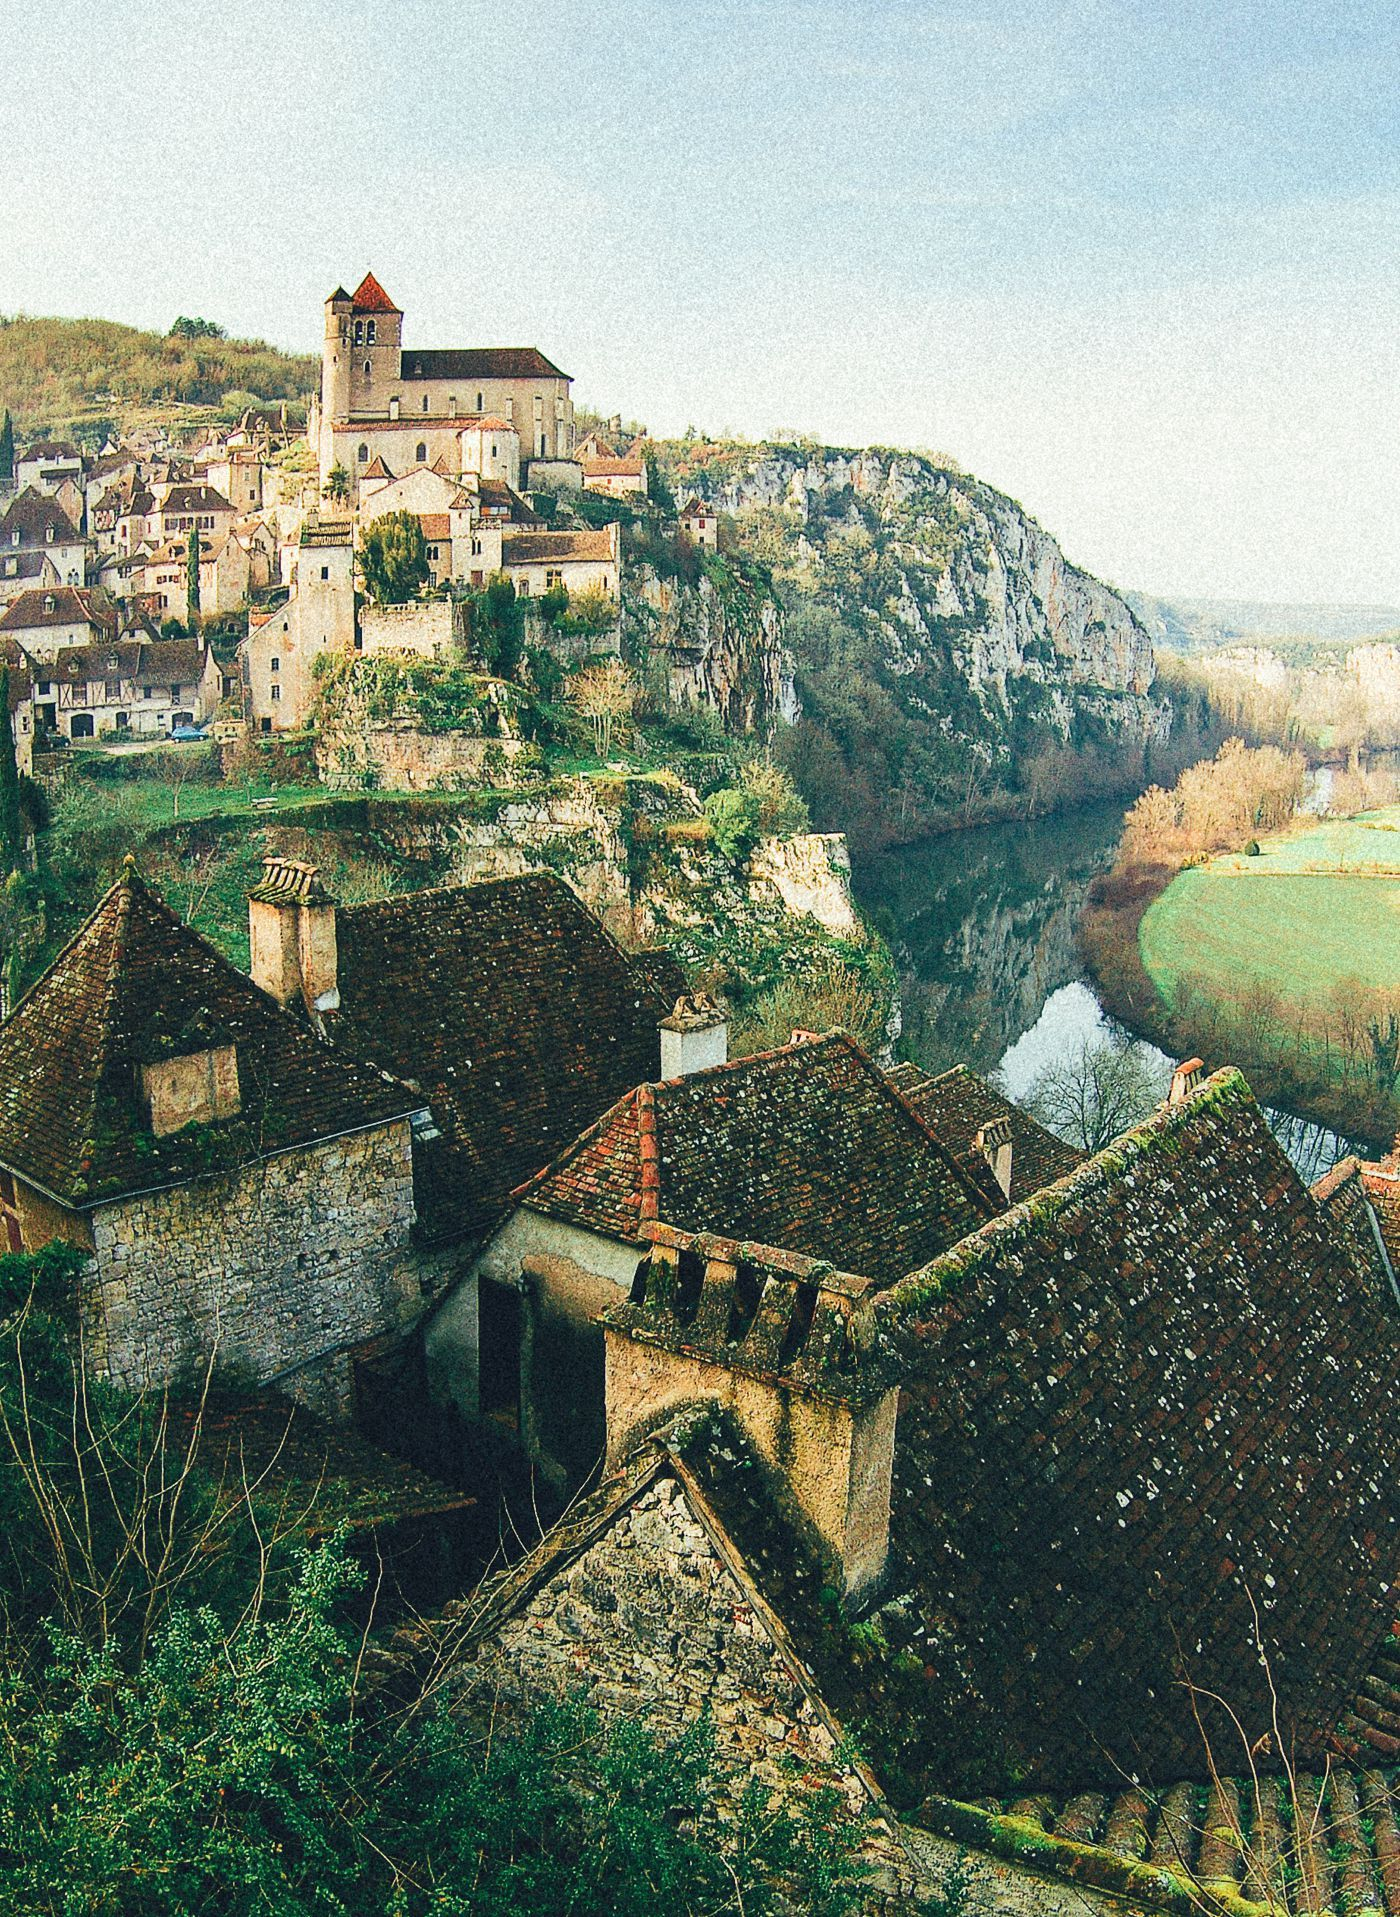 9 Charming Towns In France Renting A Car And Driving Around The Countryside Can Sometimes Be Best Way To Explore Country